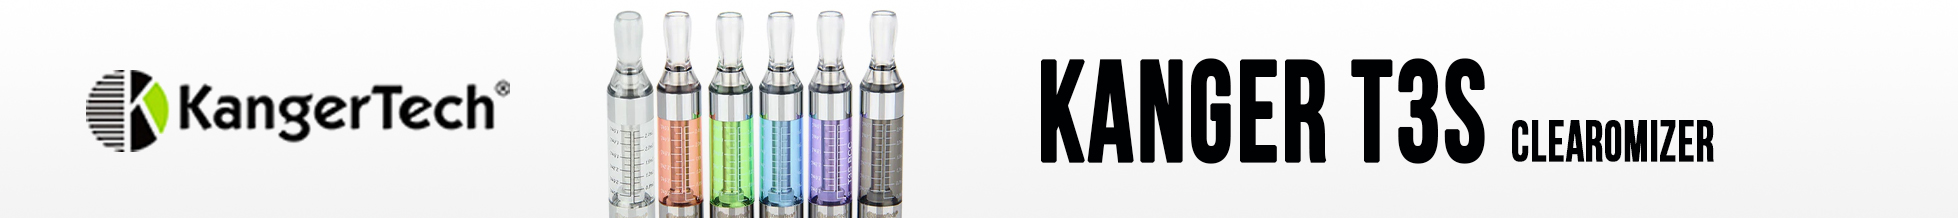 eGo 510 Tanks | E-Cigarette eGo 510 Simple Tanks Vapor